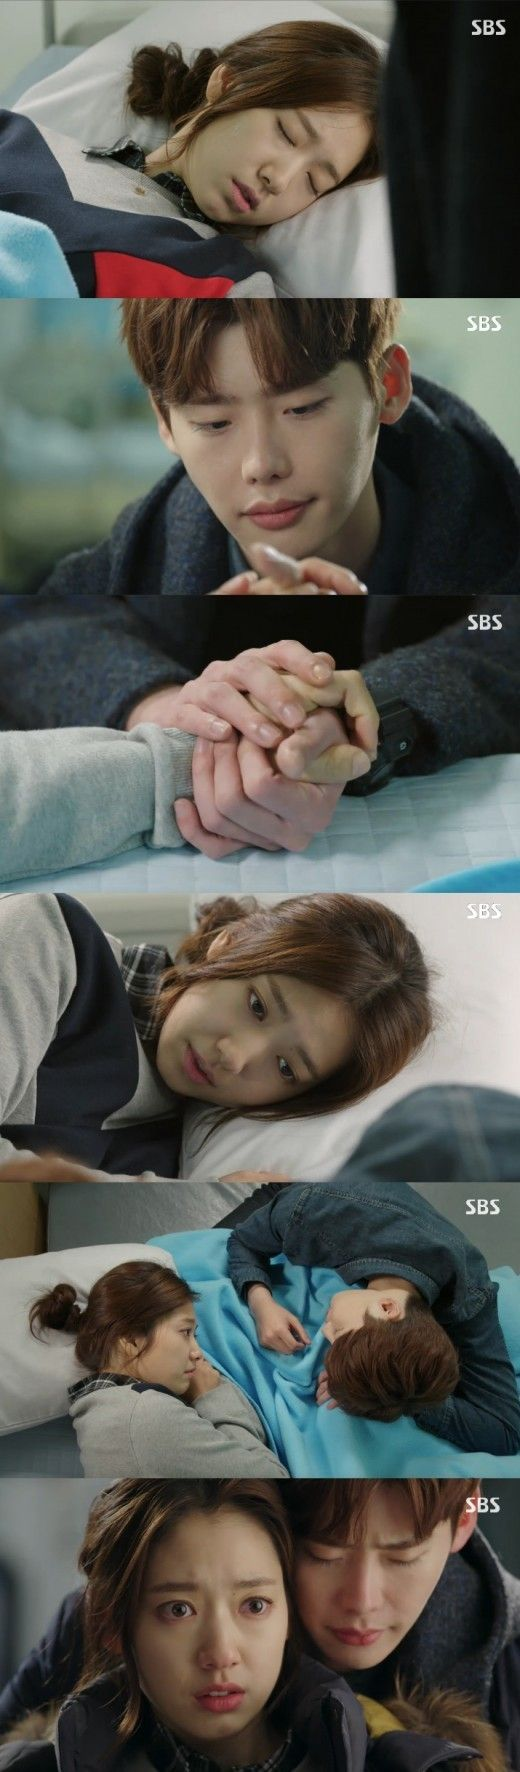 "'Pinocchio', Park Shin Hye, Lee Jong-seok affectionate towards touch ... ""heartbreaking love"": Naver News. Ep. 7"